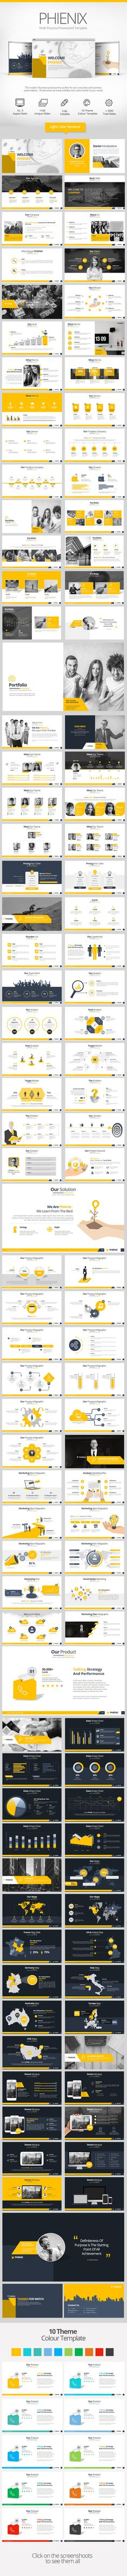 Phienix Powerpoint Presentation Template #design #slides Buy Now: http://graphicriver.net/item/phienix-powerpoint-presentation/12852607?ref=ksioks